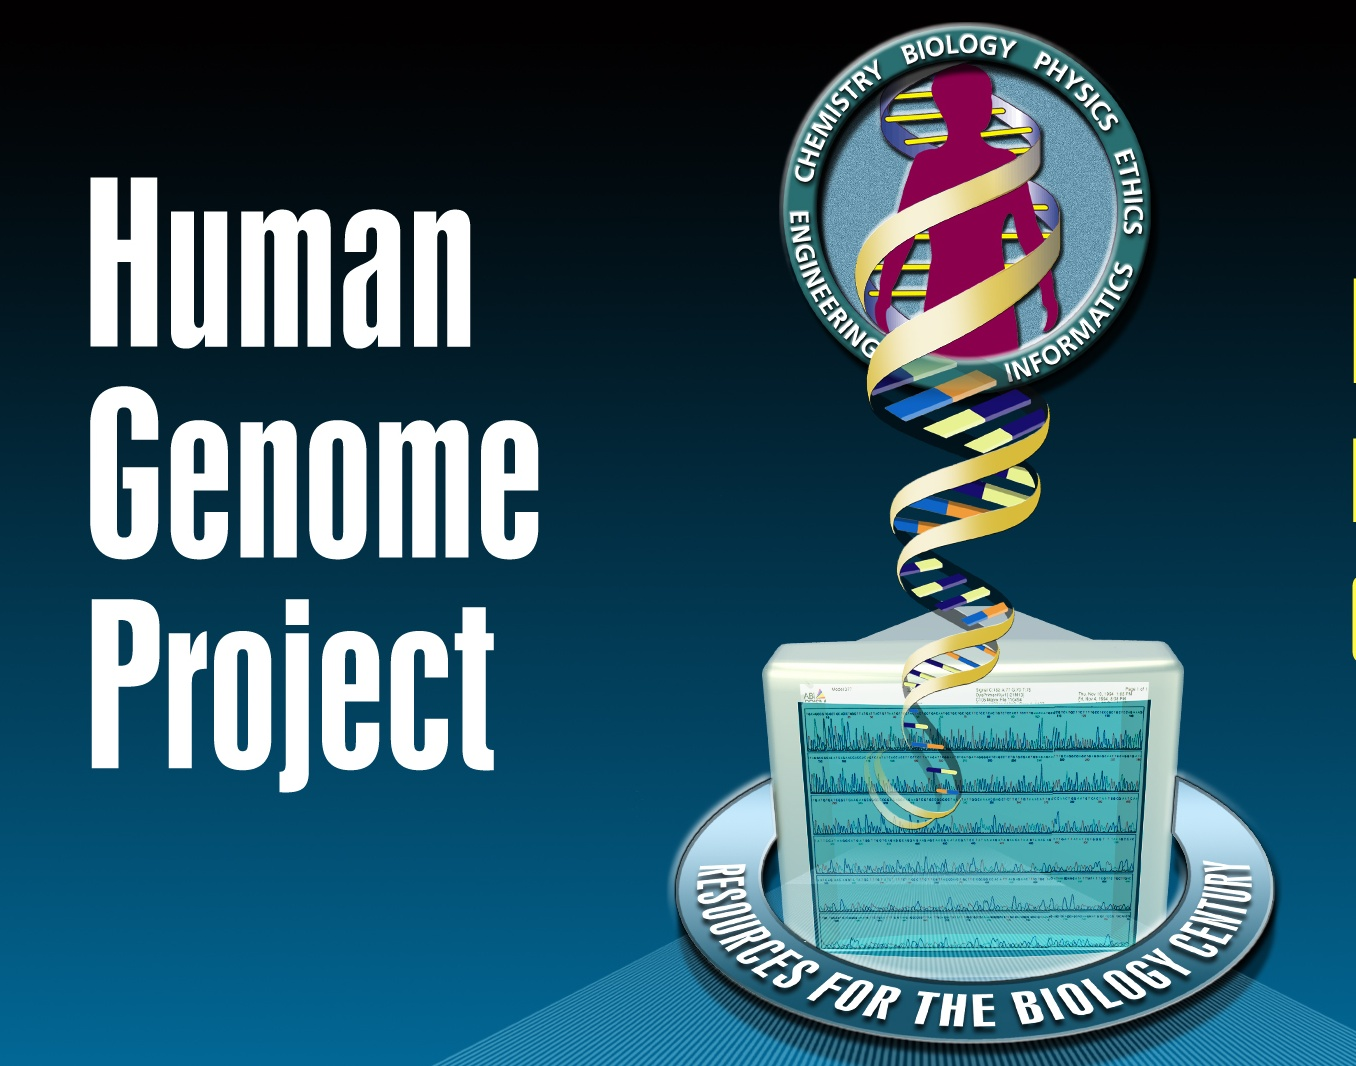 The Human Genome Project (Hgp) and Bioinformatics